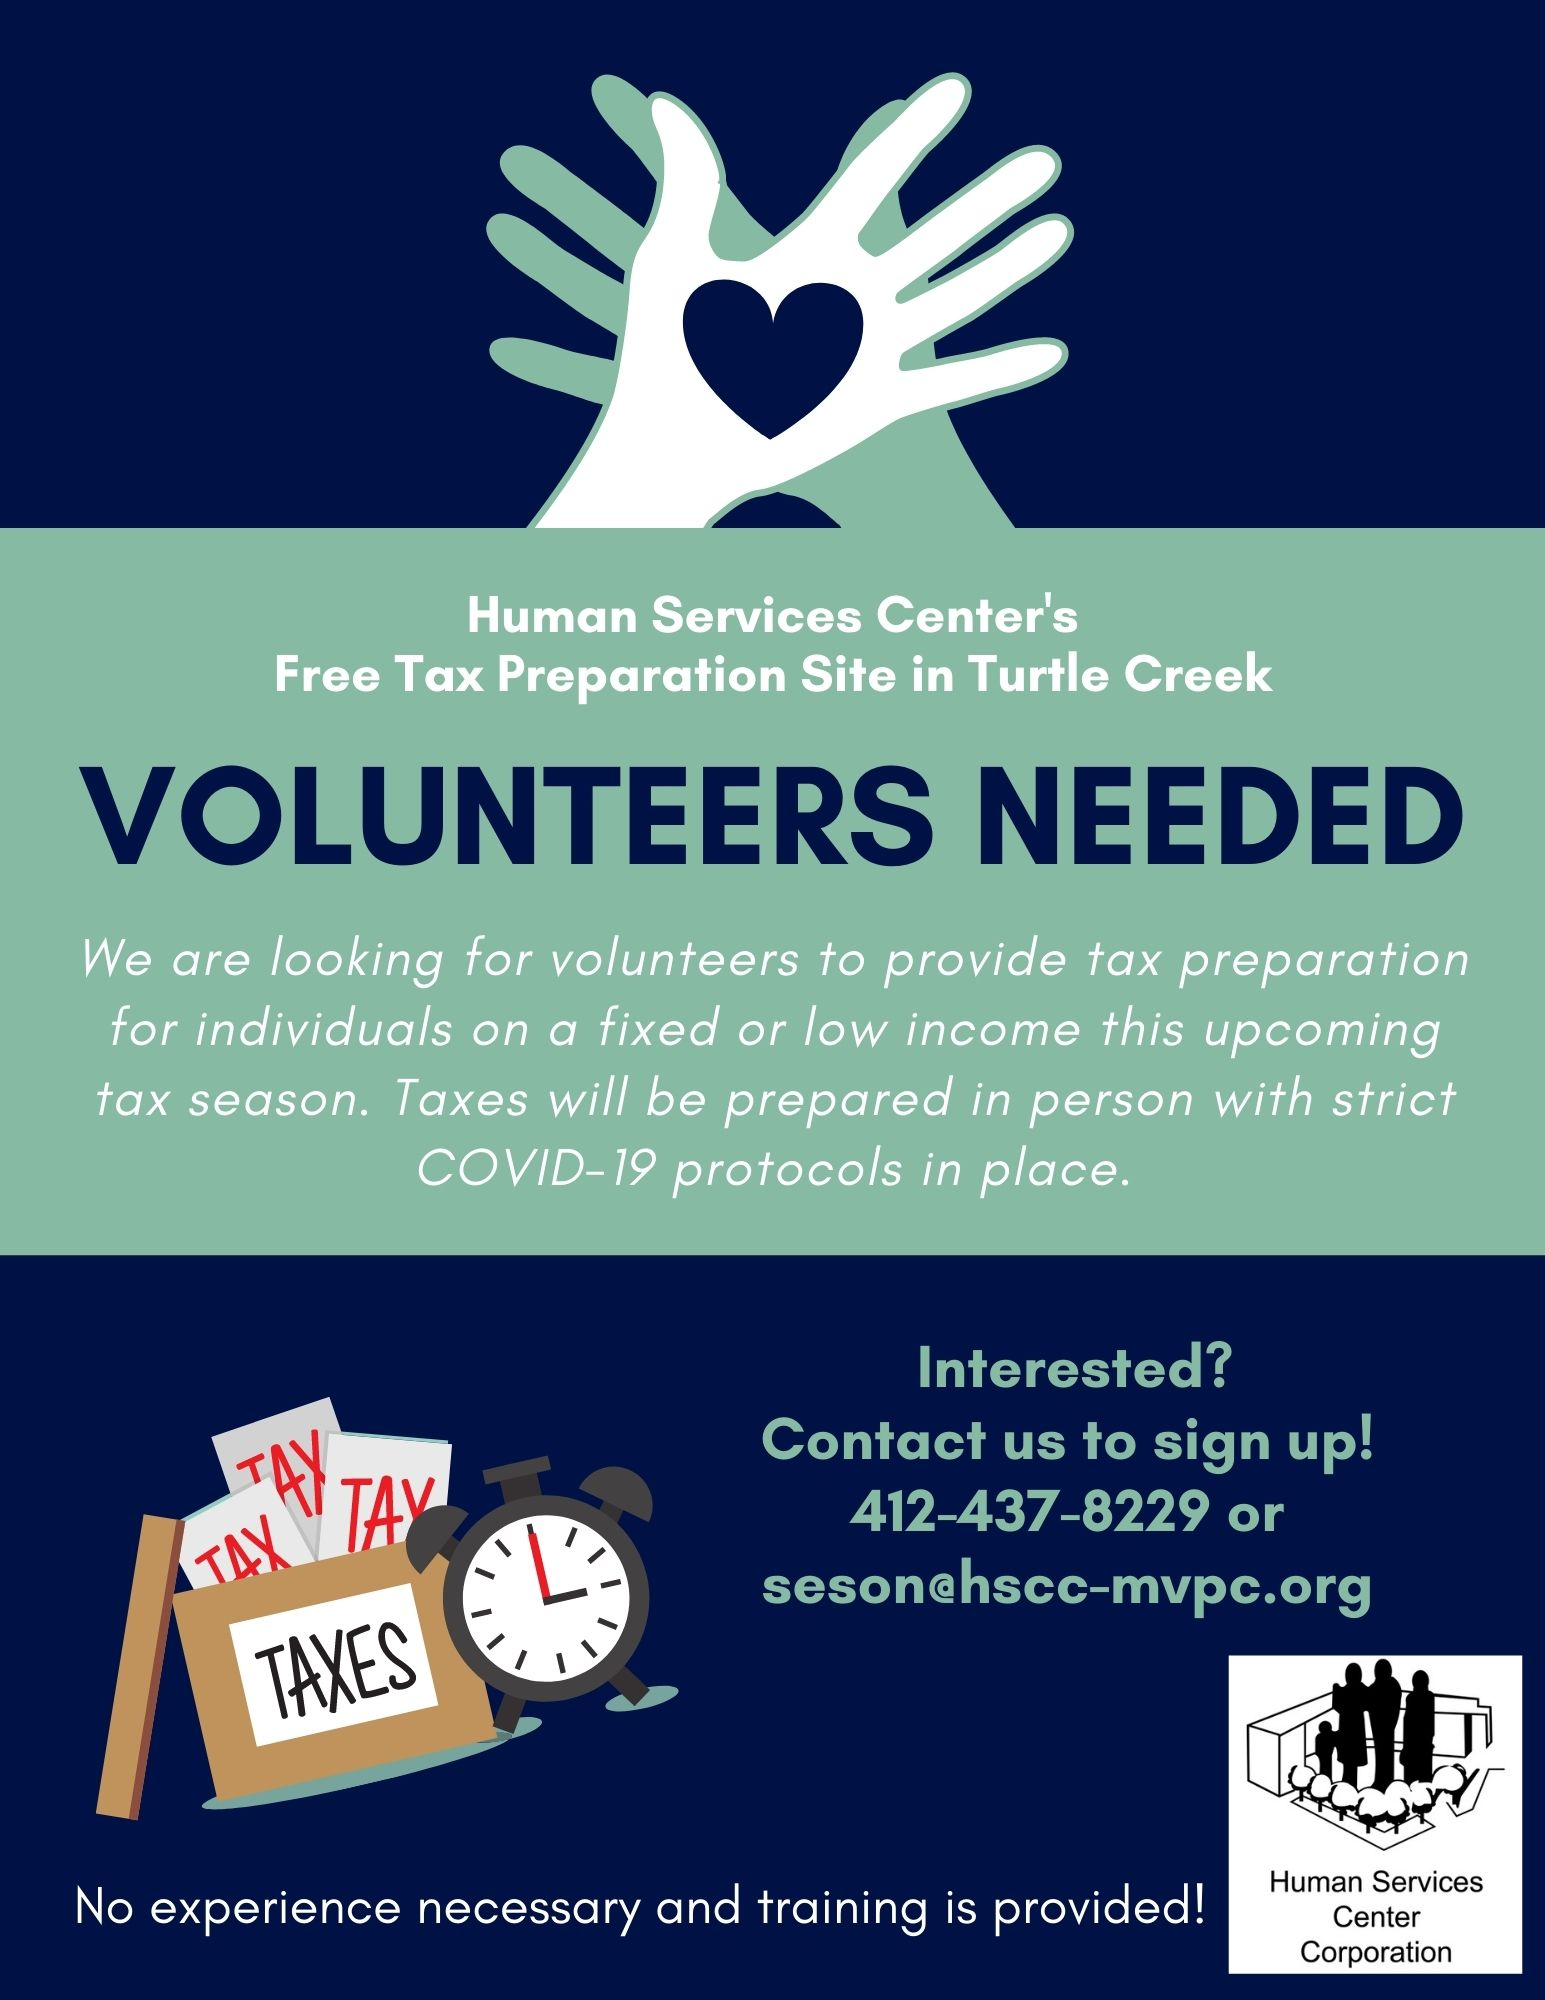 A flyer to recruit volunteers for a tax assistance program. Shows two hands and our logo